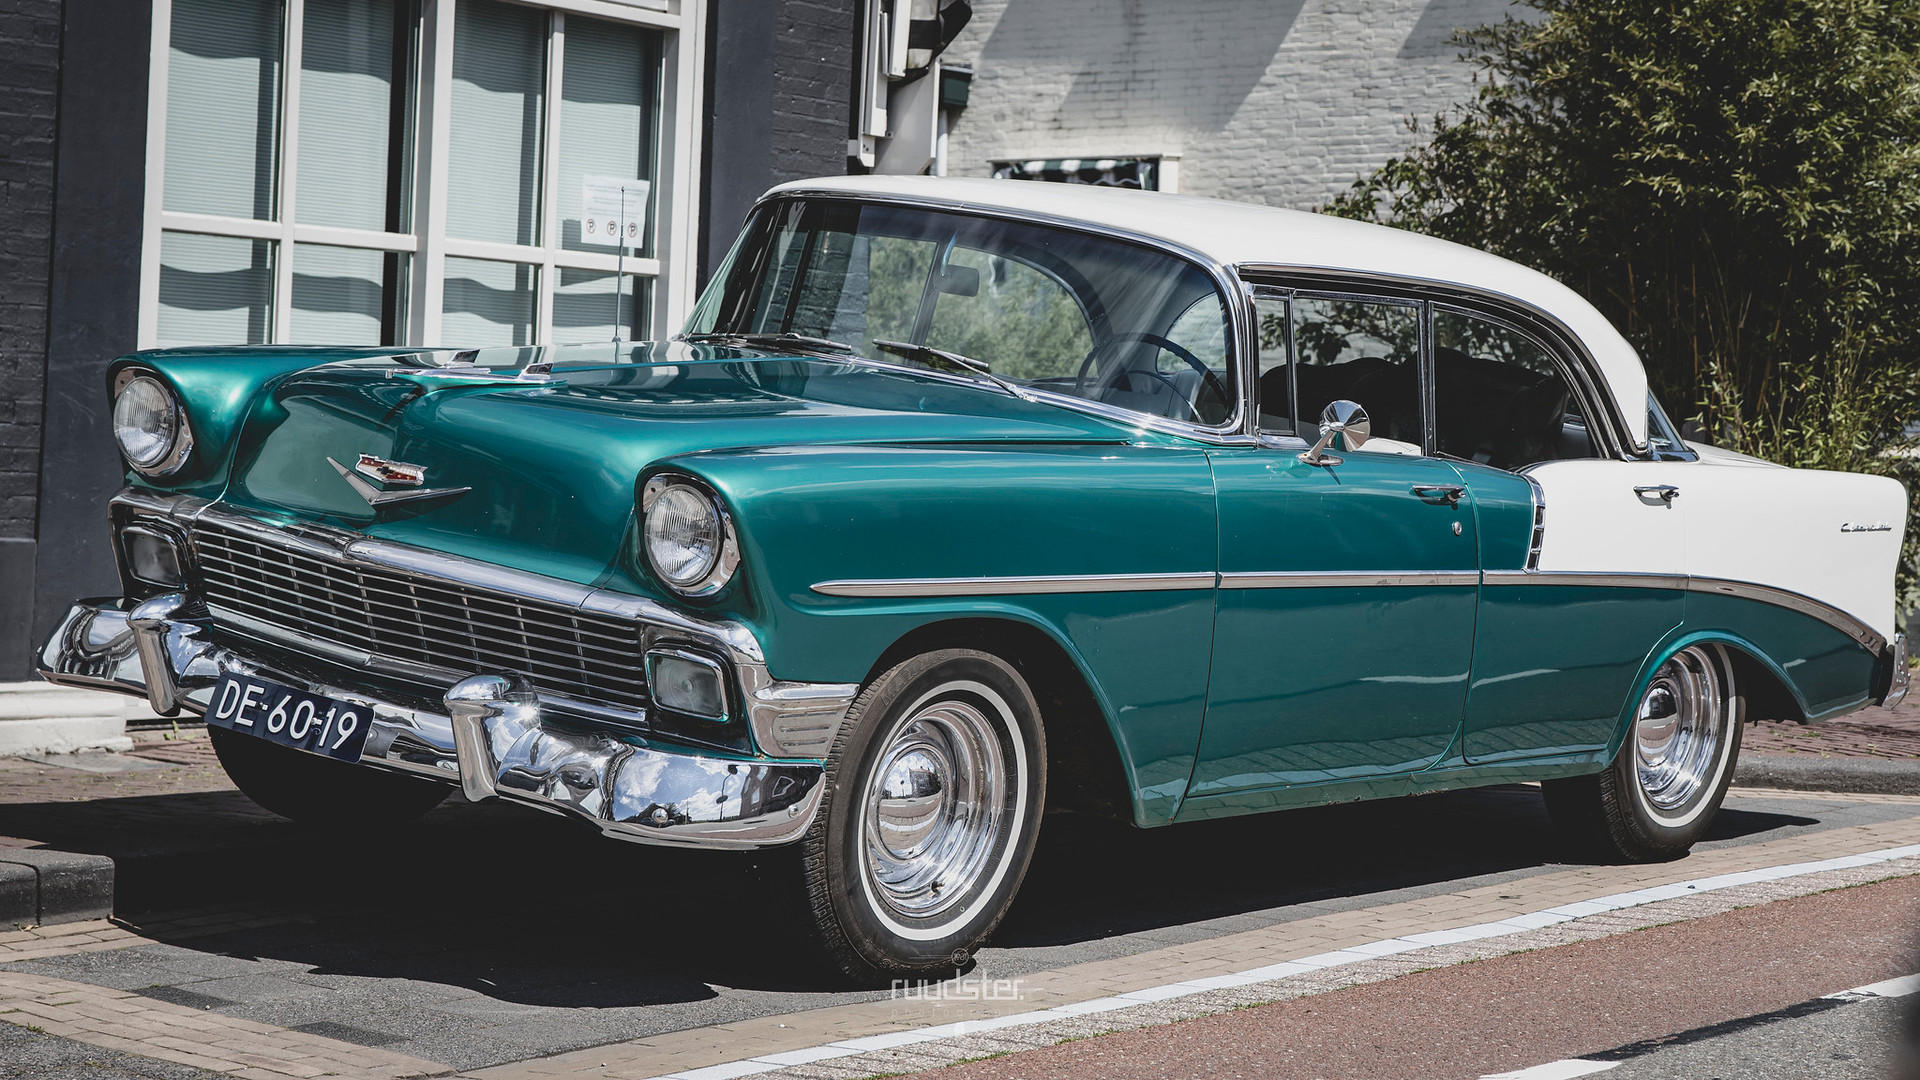 1956 | DE-60-19 | Chevrolet Bel Air